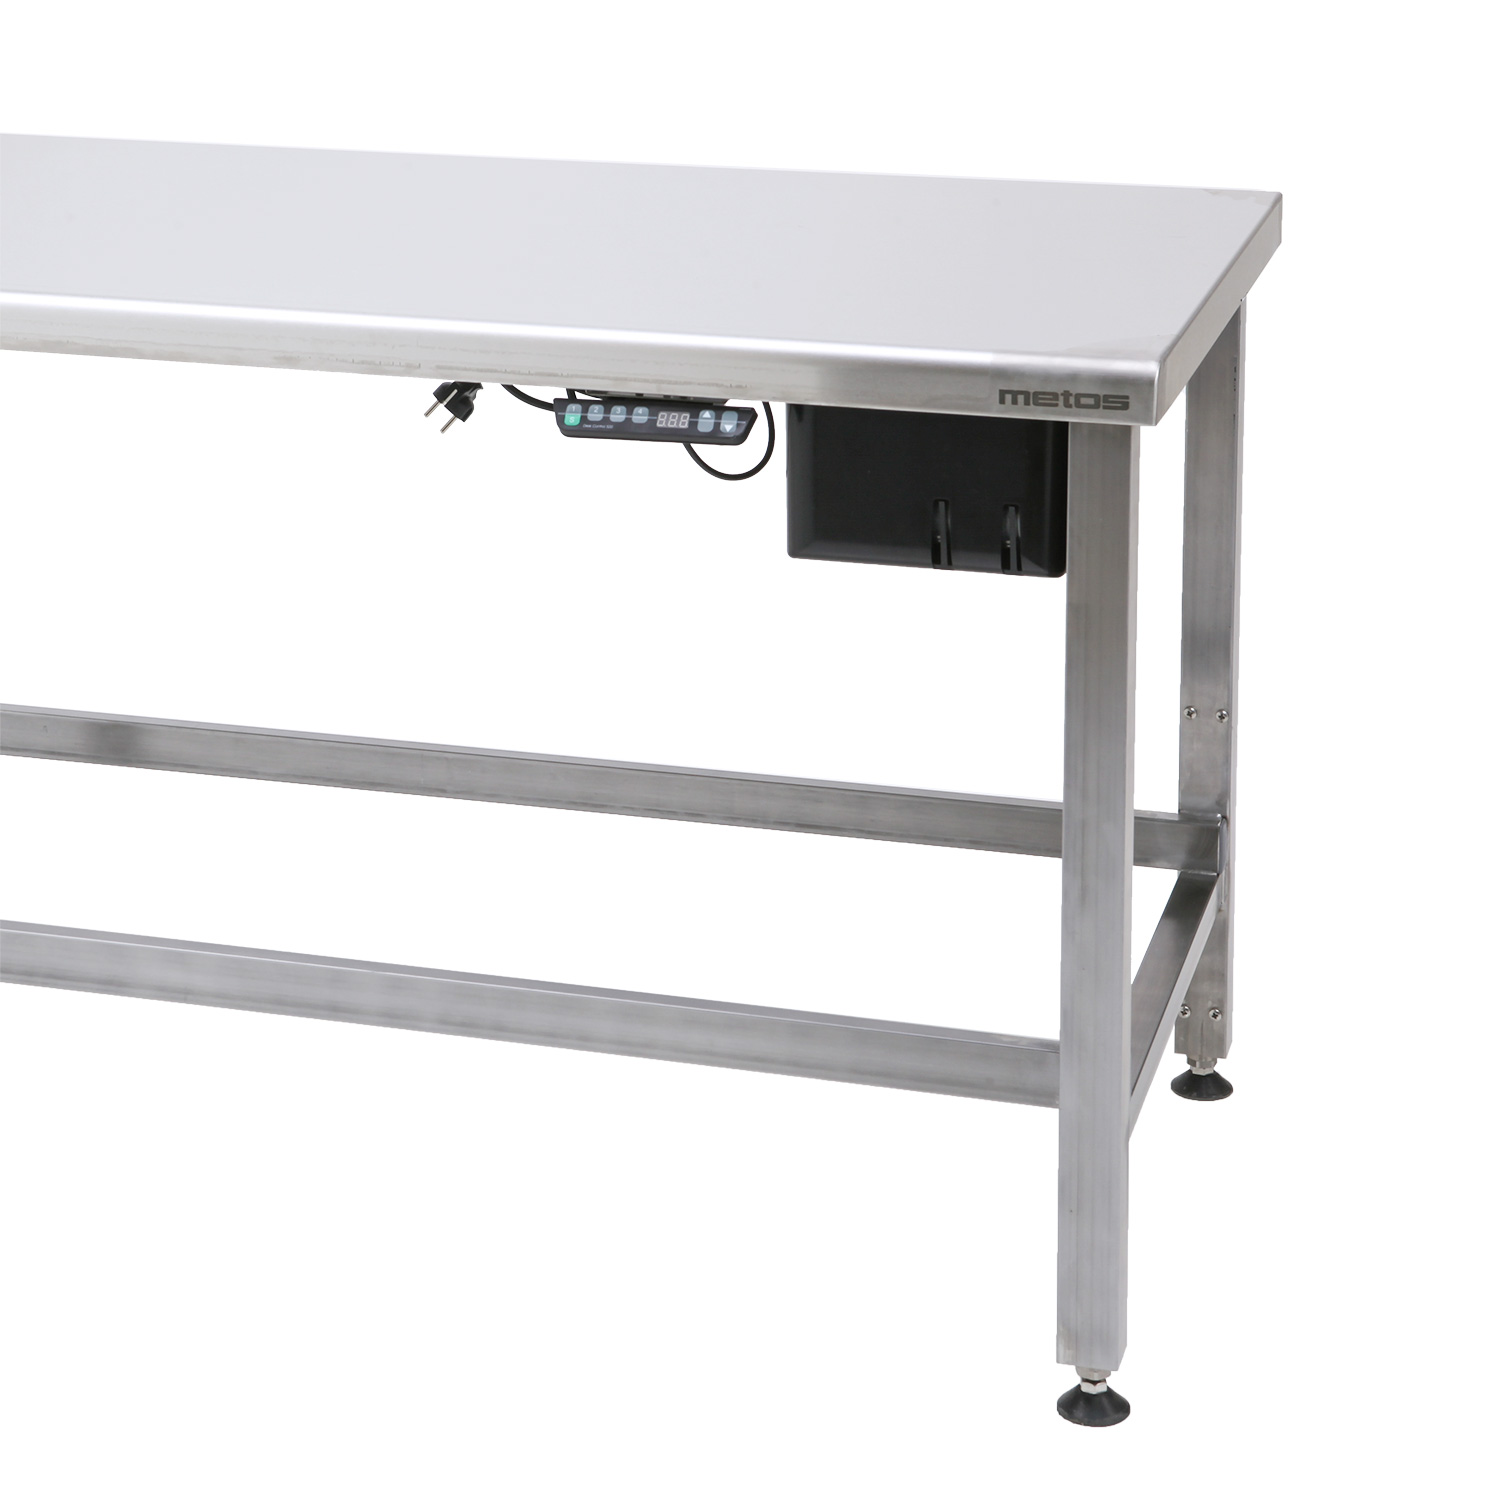 4136136 | Height adjustable table Metos ATHE1065 |